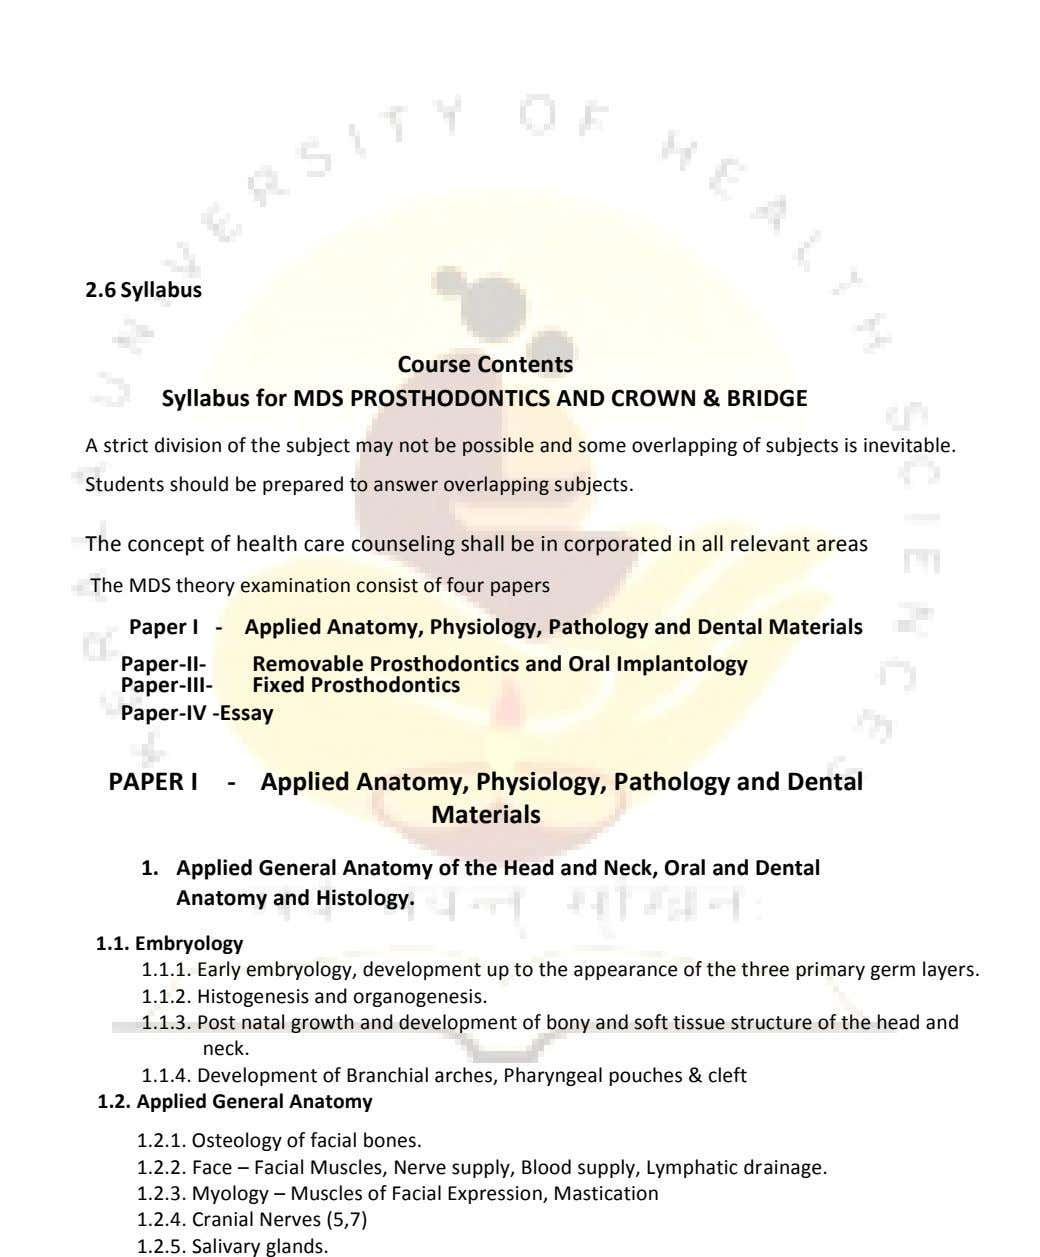 2.6 Syllabus Course Contents Syllabus for MDS PROSTHODONTICS AND CROWN & BRIDGE A strict division of